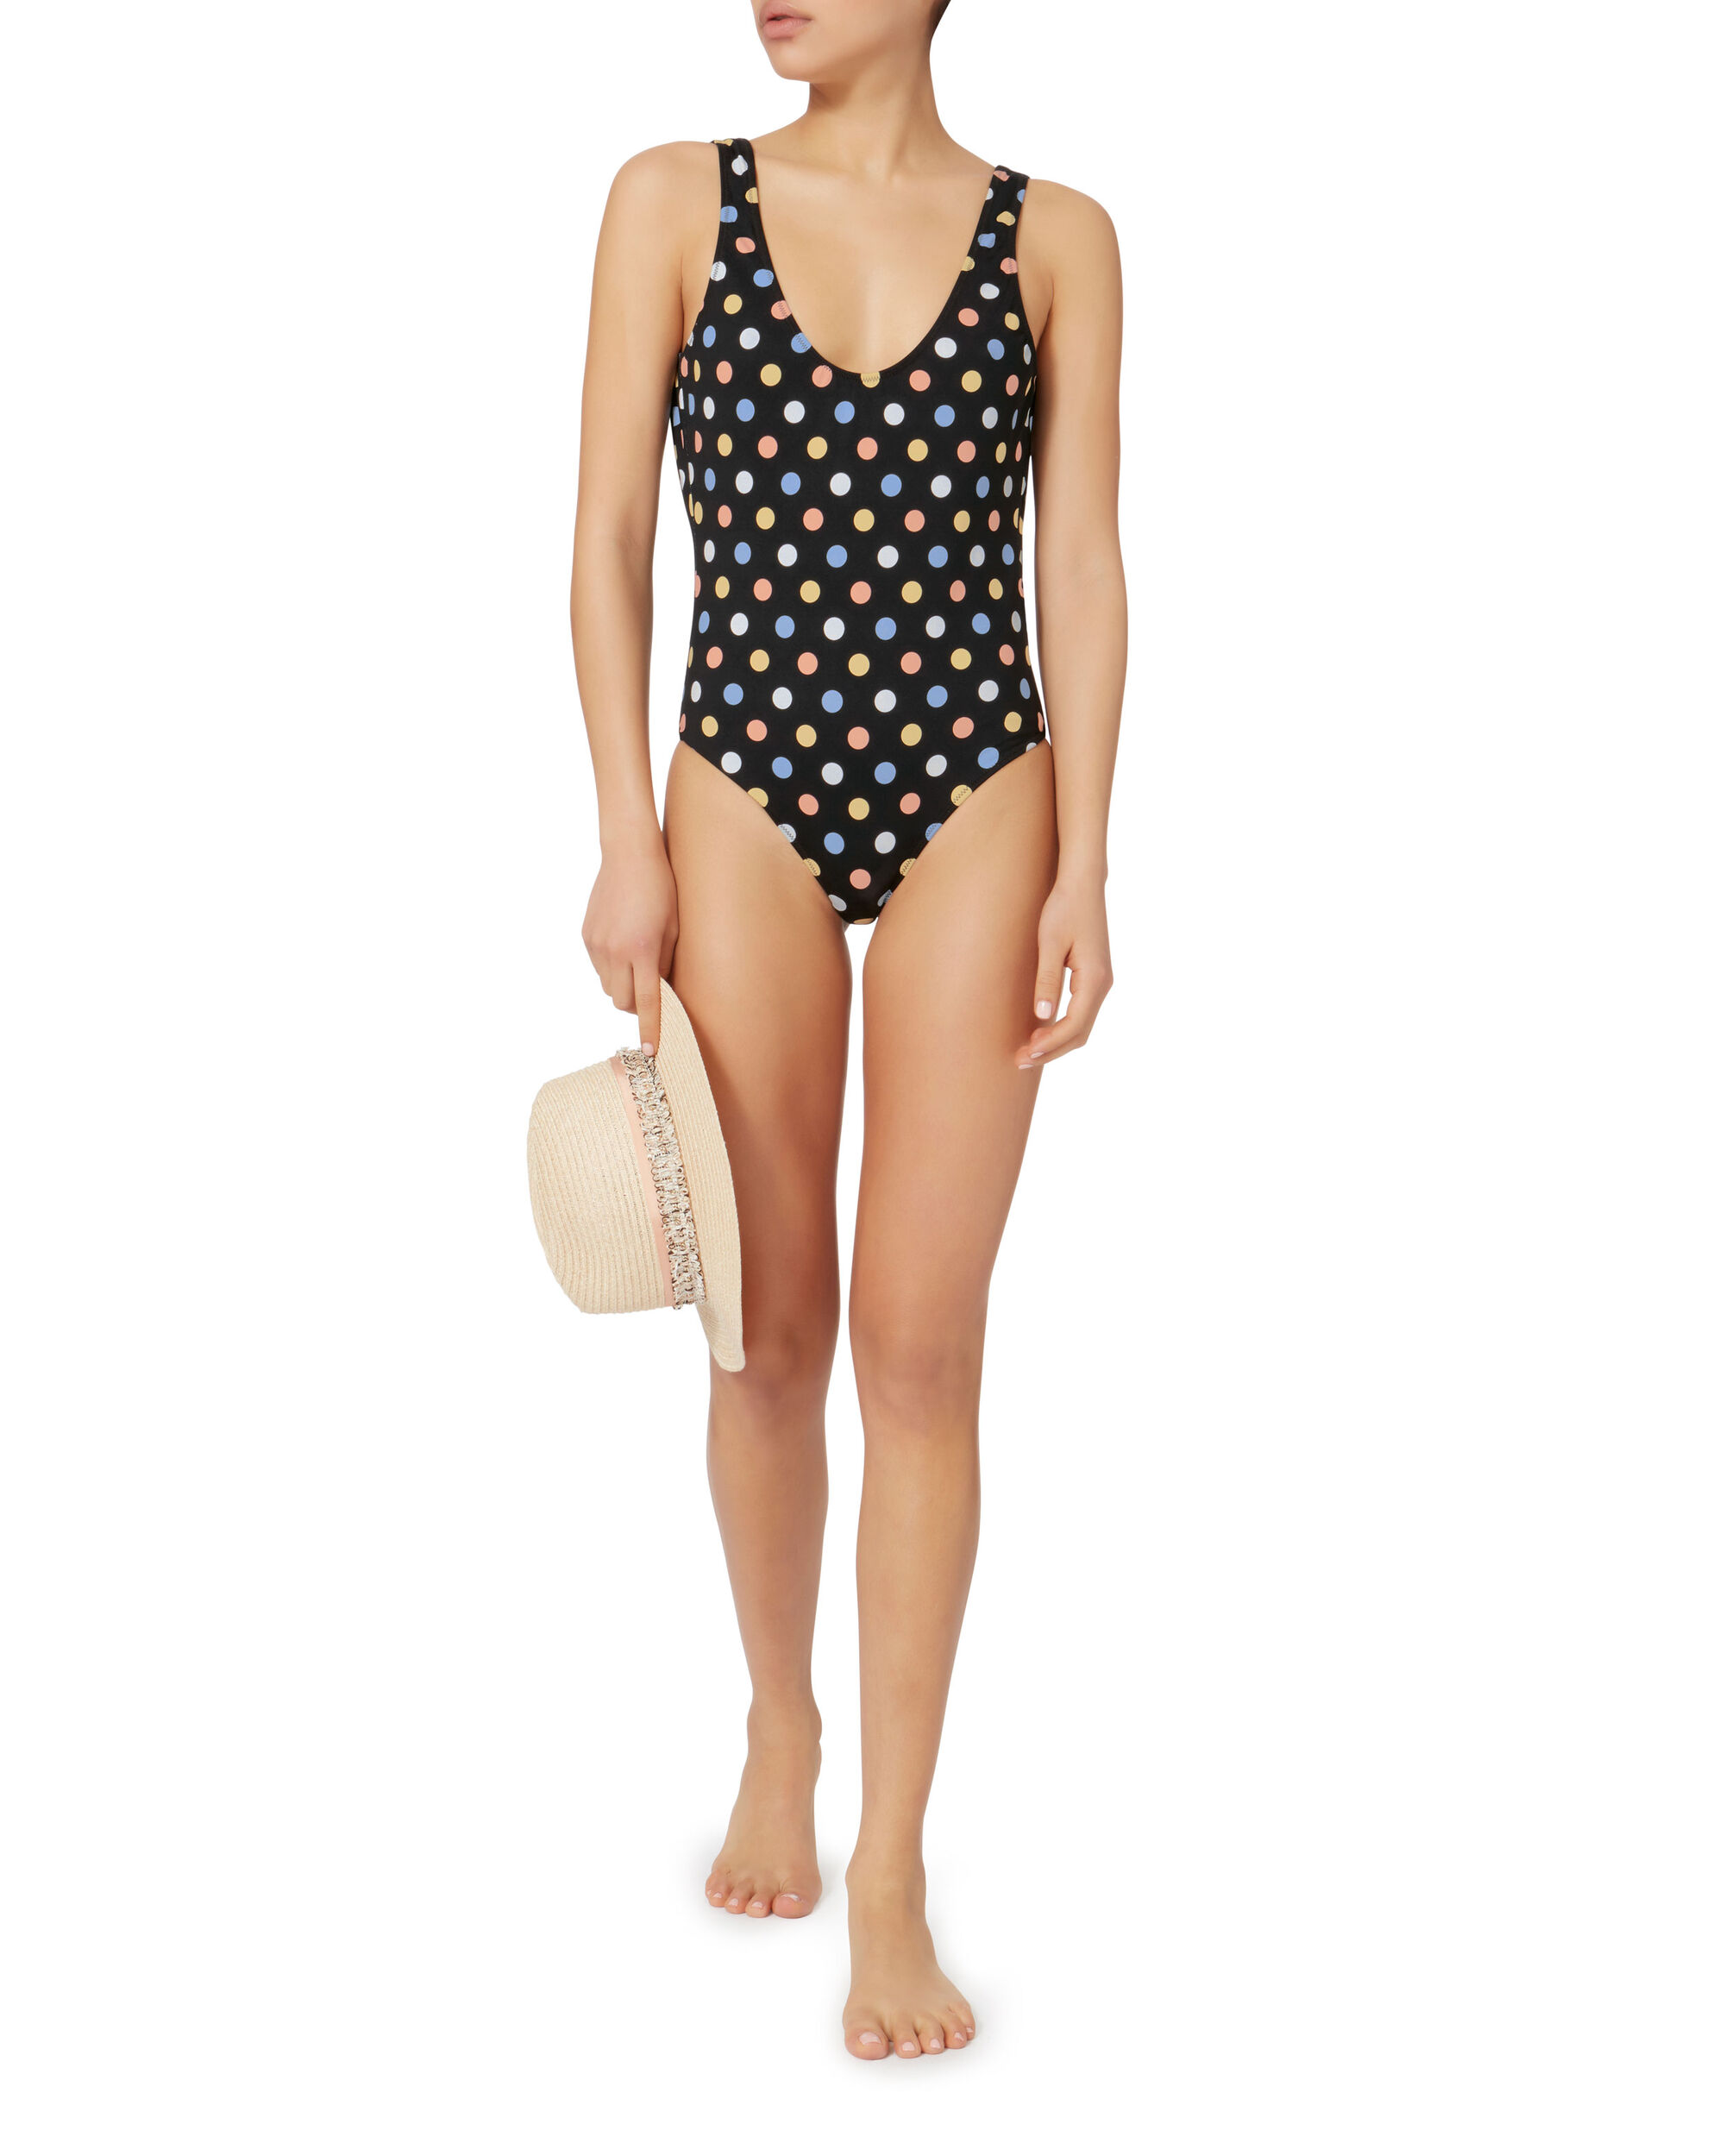 Clio Polka Dot One Piece Swimsuit, PRINT, hi-res